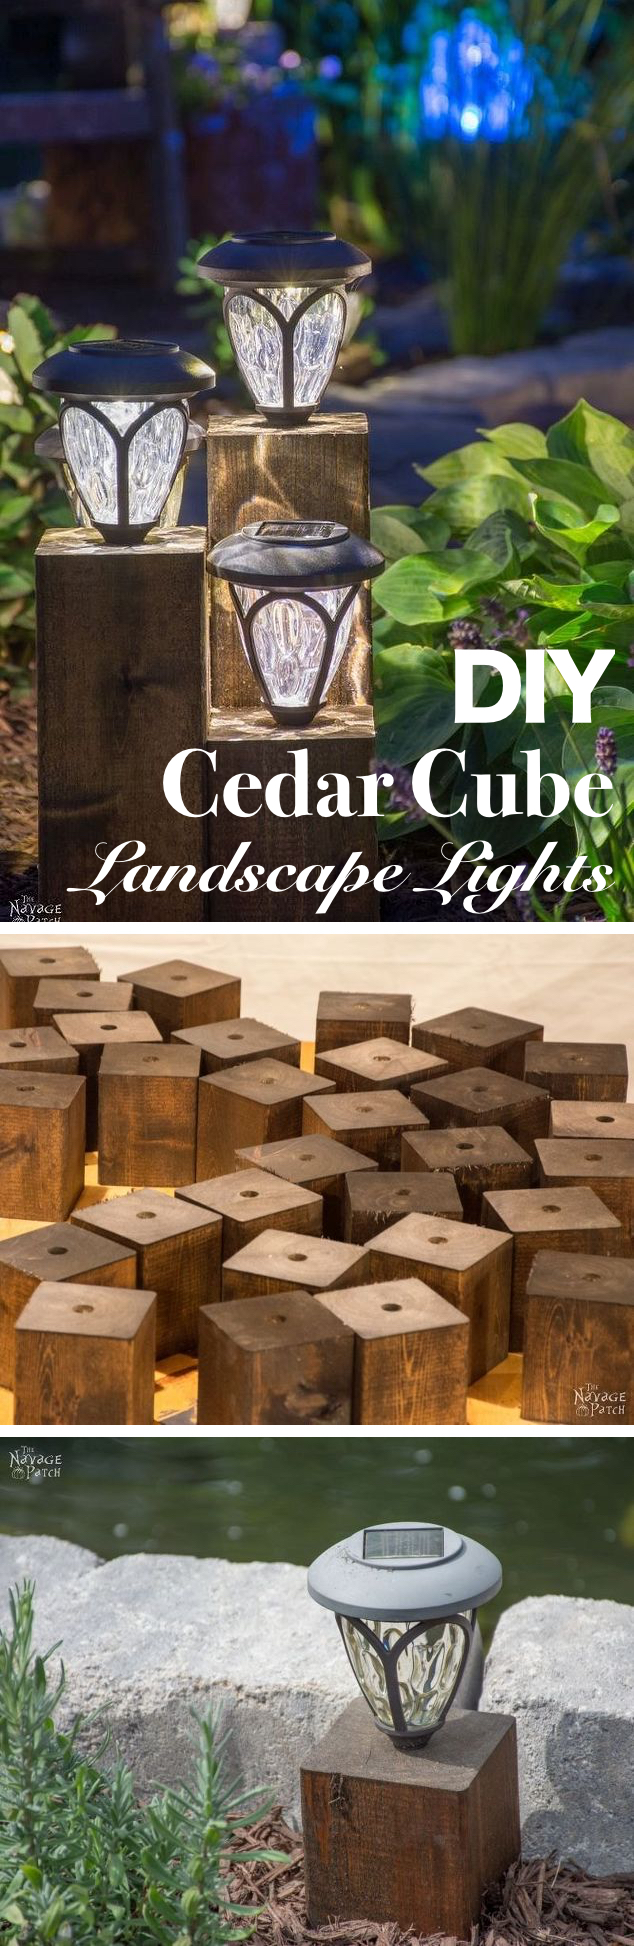 Outdoor Lighting Ideas Diy 15 brilliant diy outdoor lighting ideas for summer homelovr cedar cube landscape lights diy workwithnaturefo